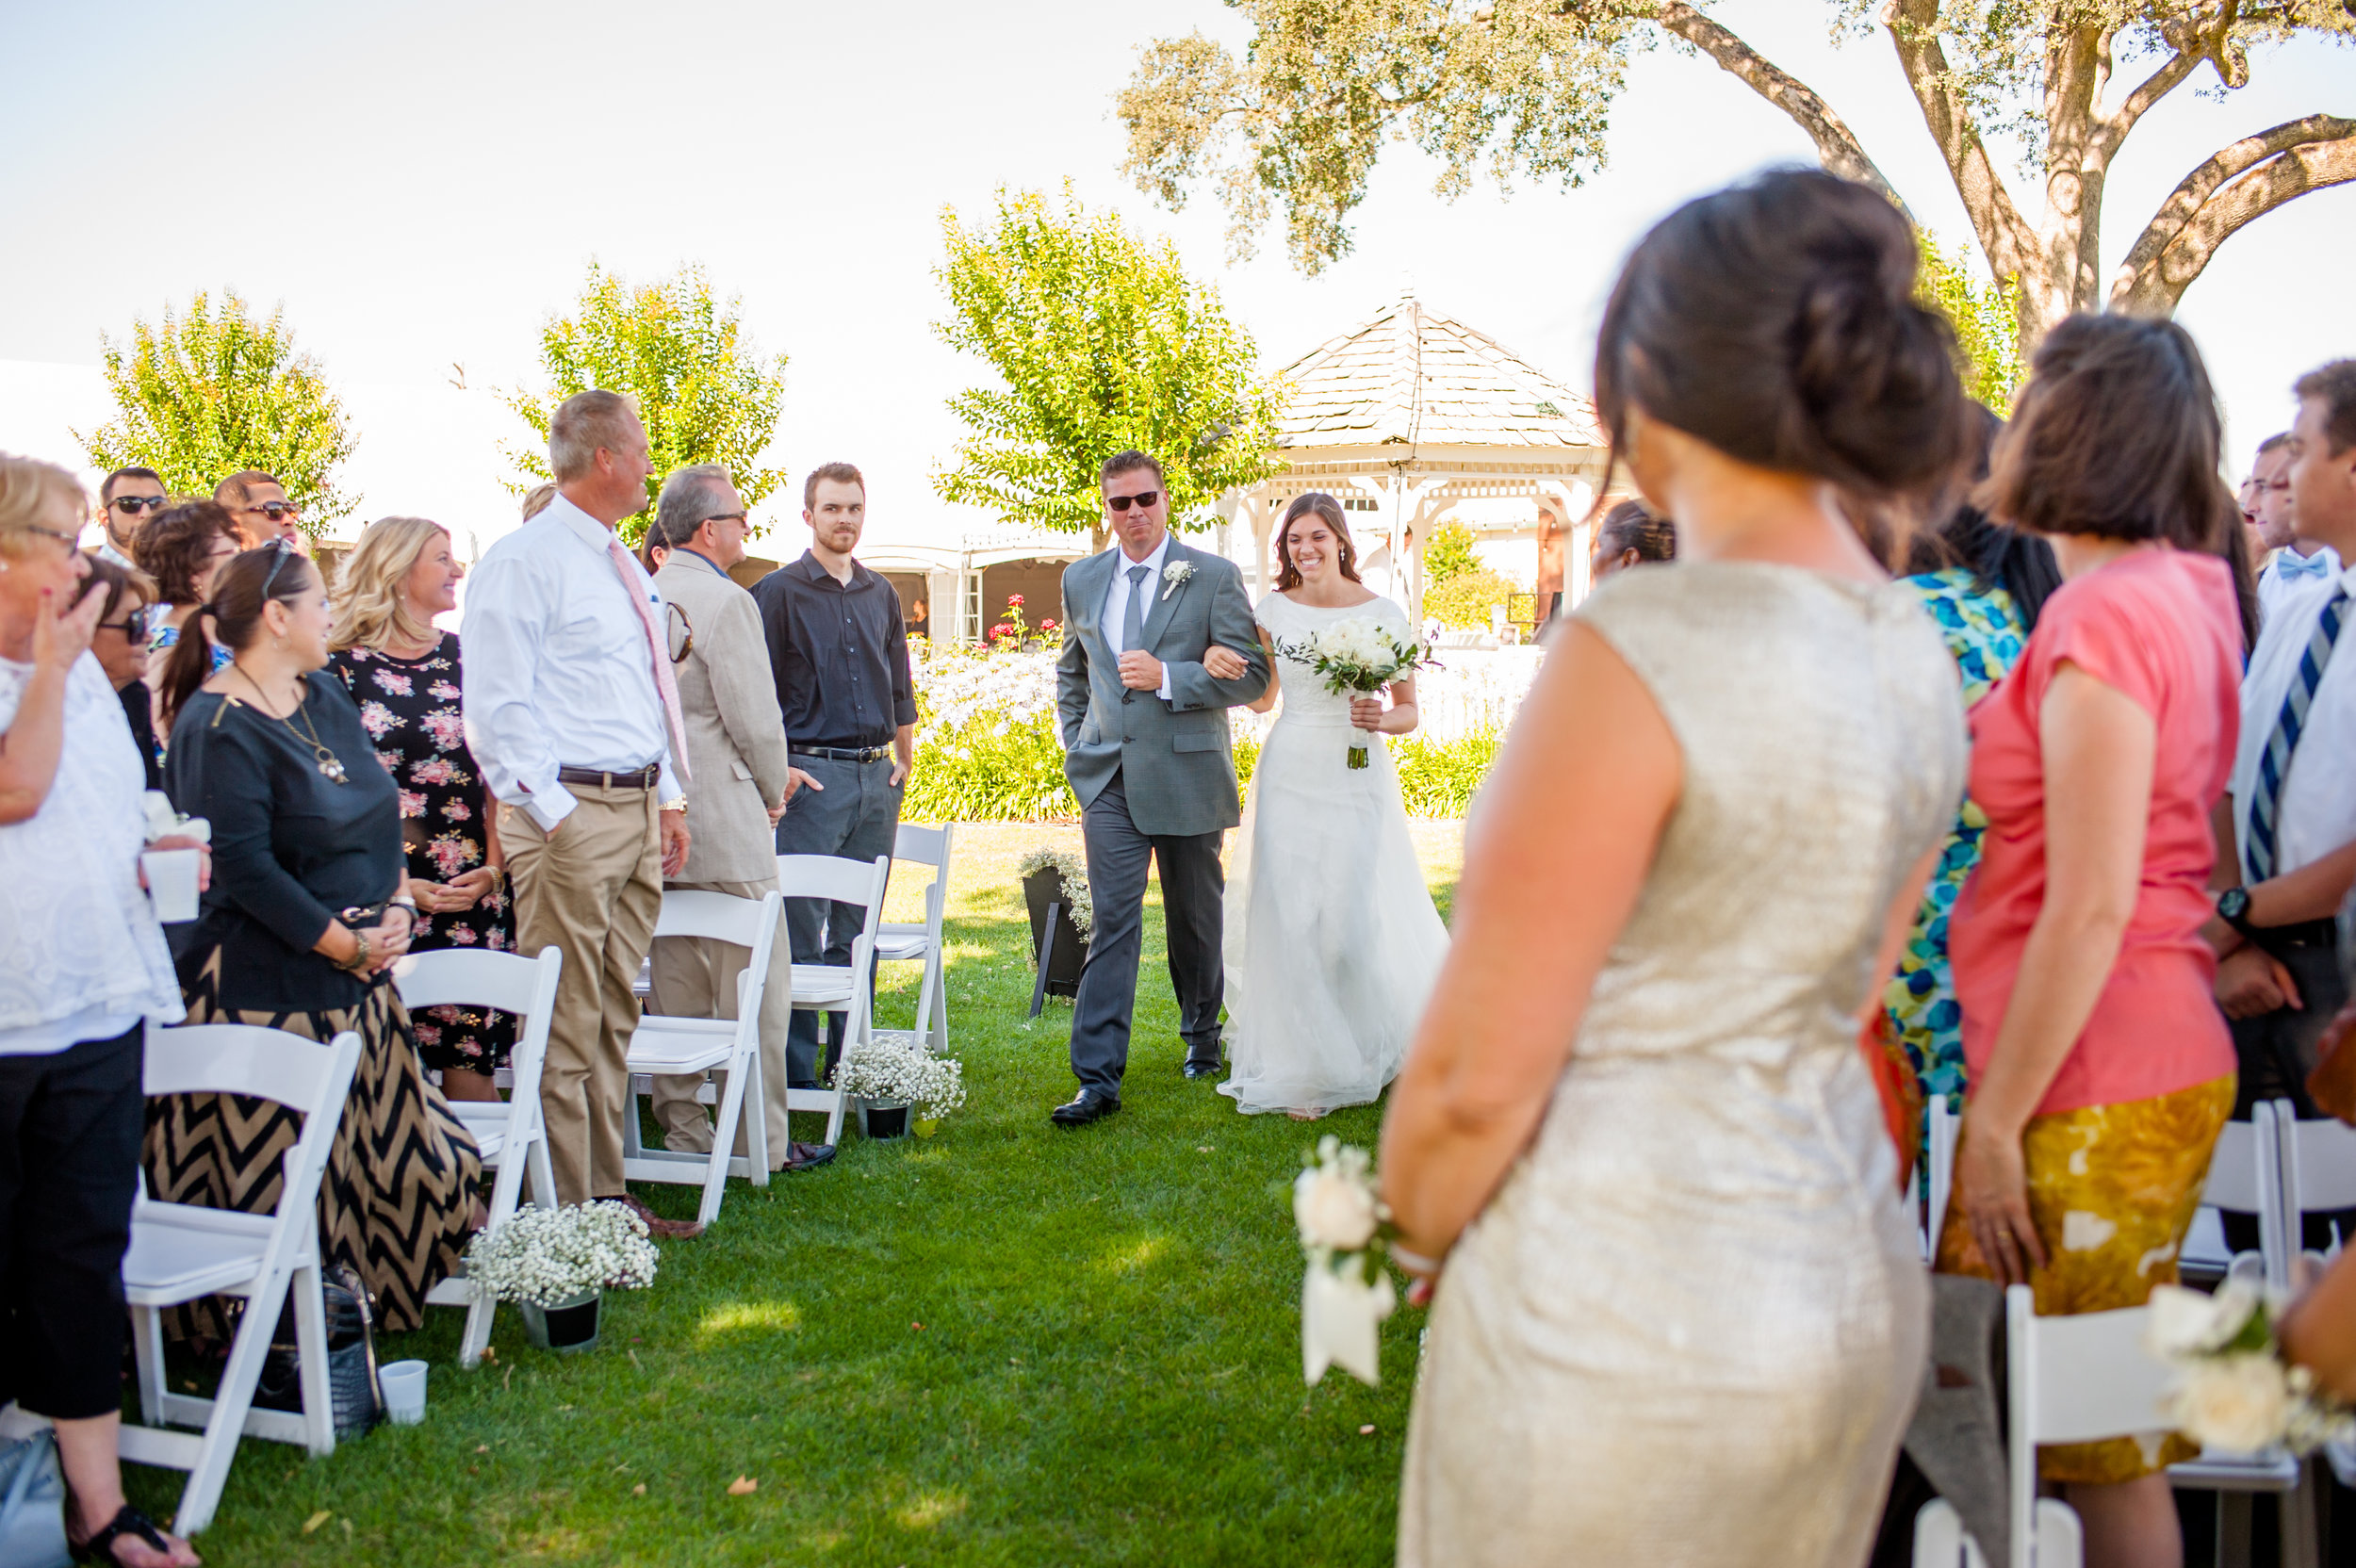 meghan-jonah-011-haggin-oaks-golf-course-sacramento-engagement-wedding-photographer-katherine-nicole-photography.JPG